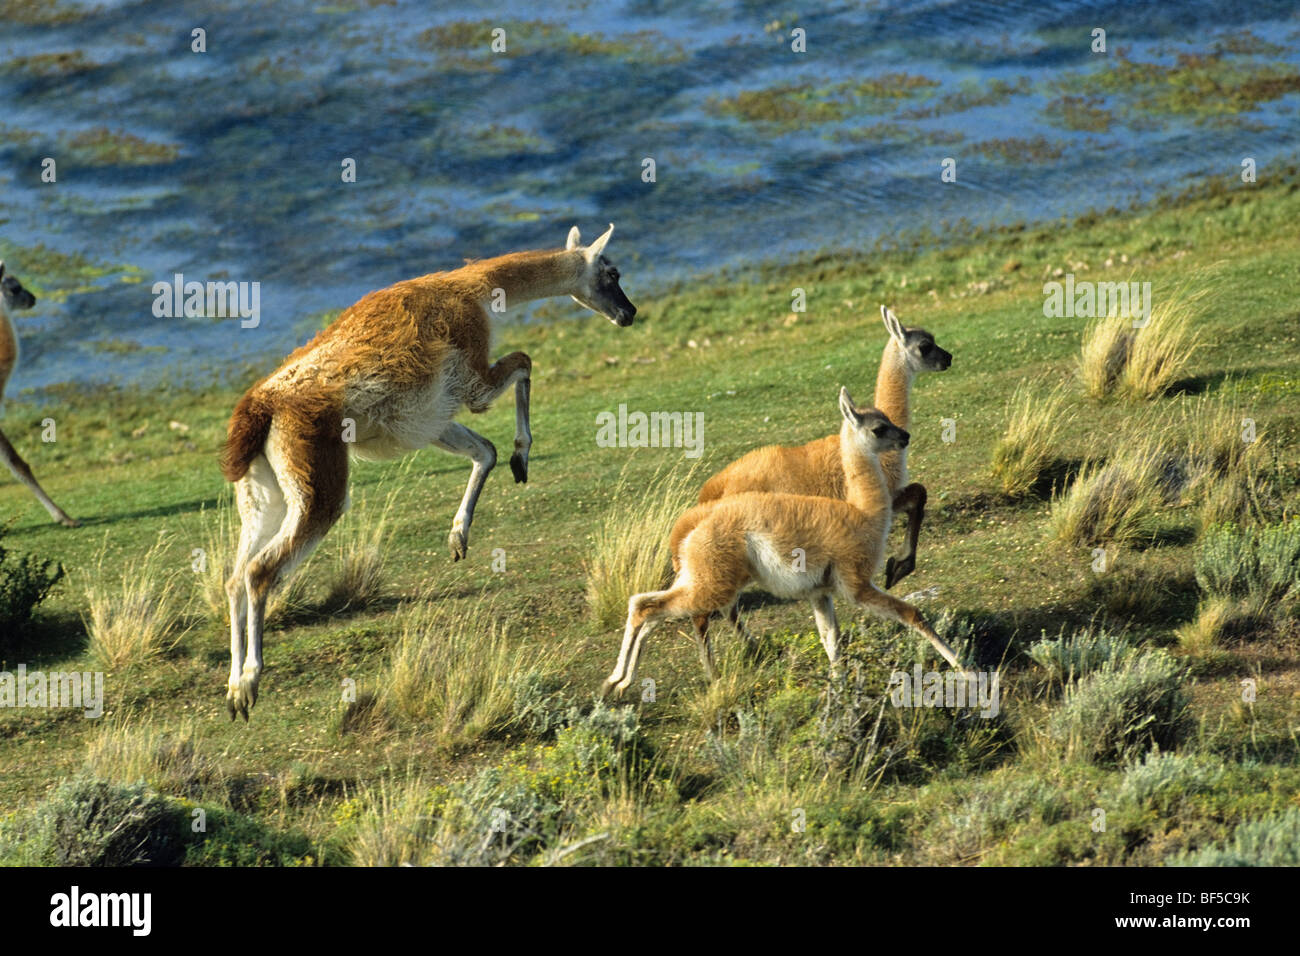 Guanaco (Lama guanicoe) with young, Torres del Paine National Park, Patagonia, Chile, South America - Stock Image